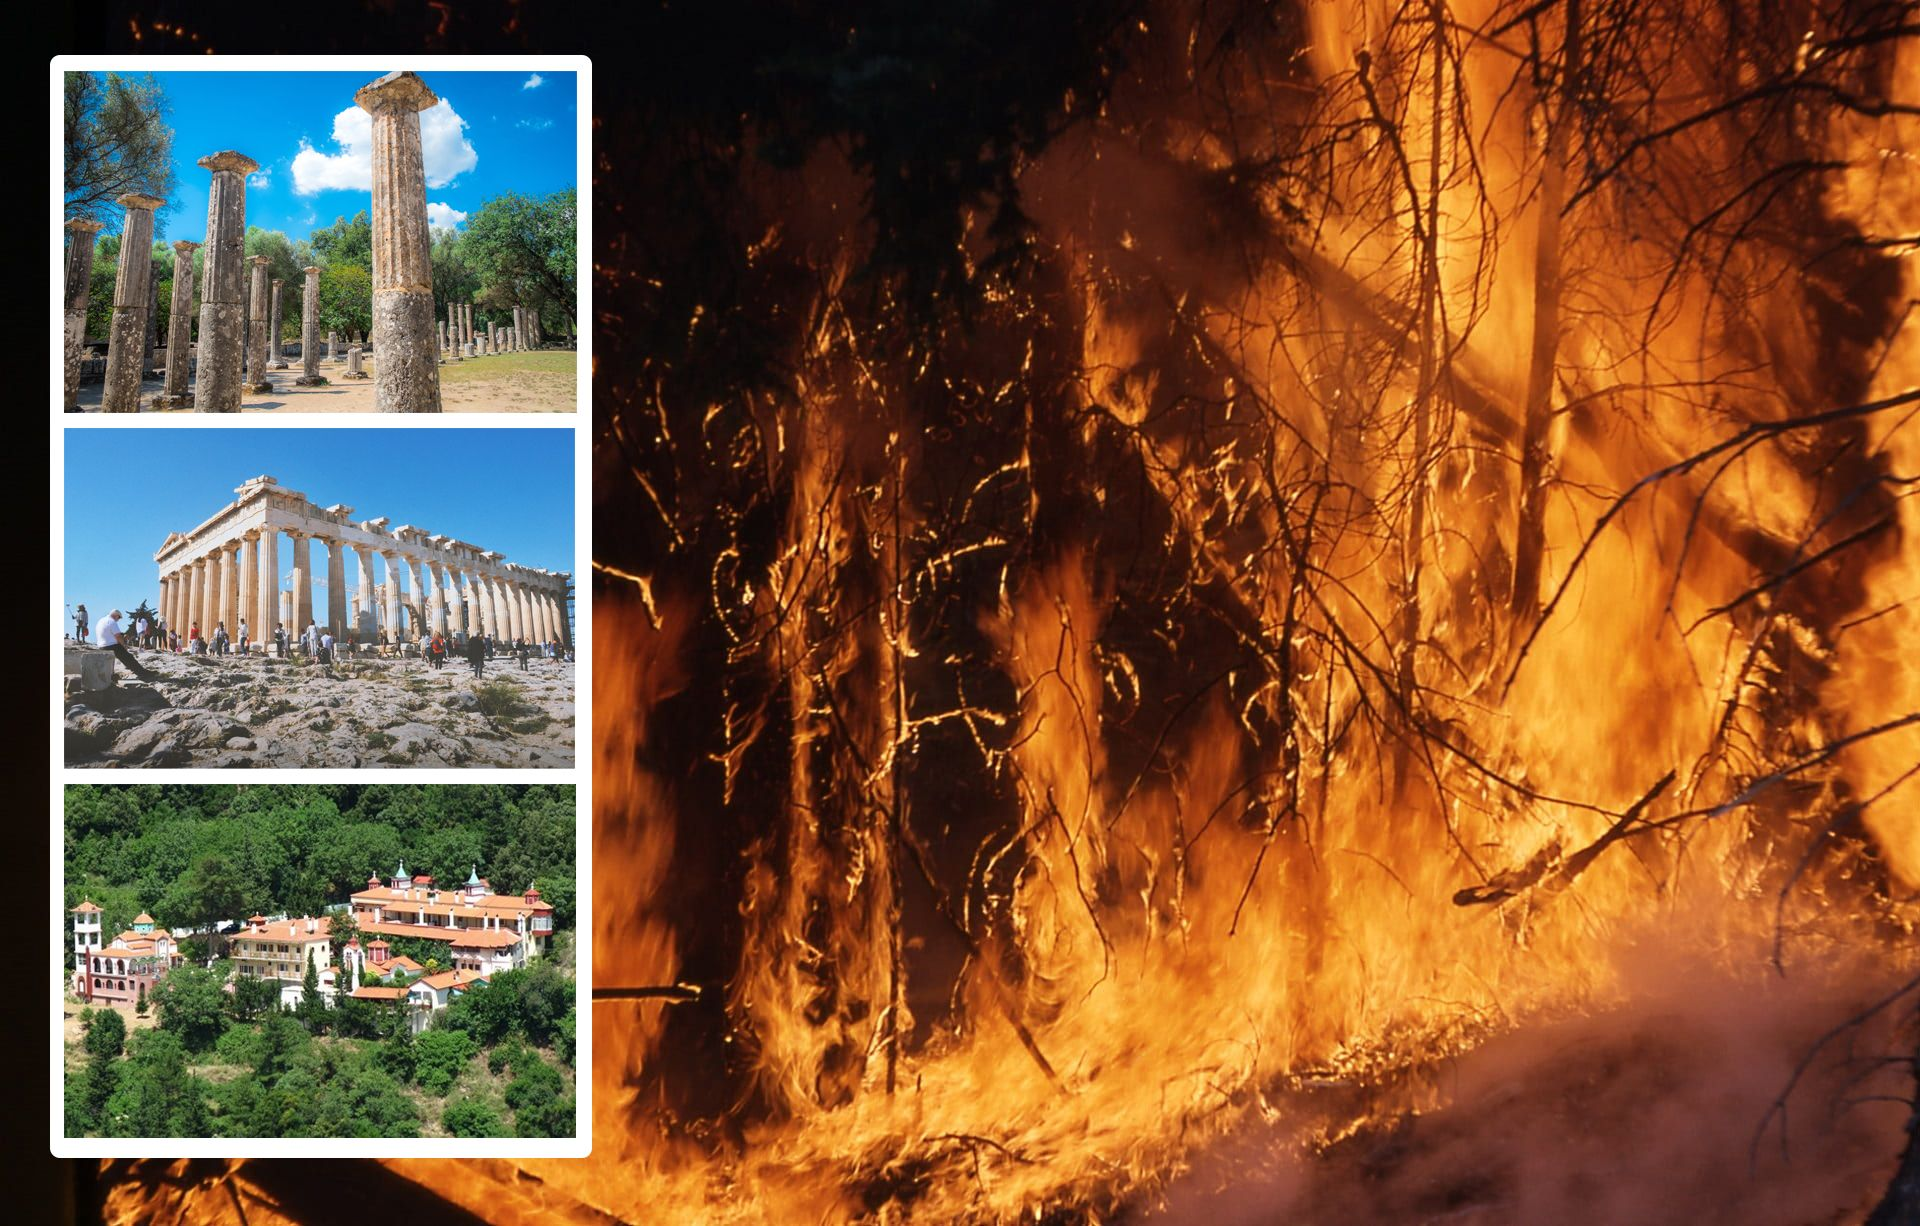 Fires rage in Greece threatening historic sites including Olympia (top) and the Monastery of Saint David on Evia island (bottom), while the Acropolis in Athens (centre) has been forced to close Acropolis: Francesca Noemi Marconi